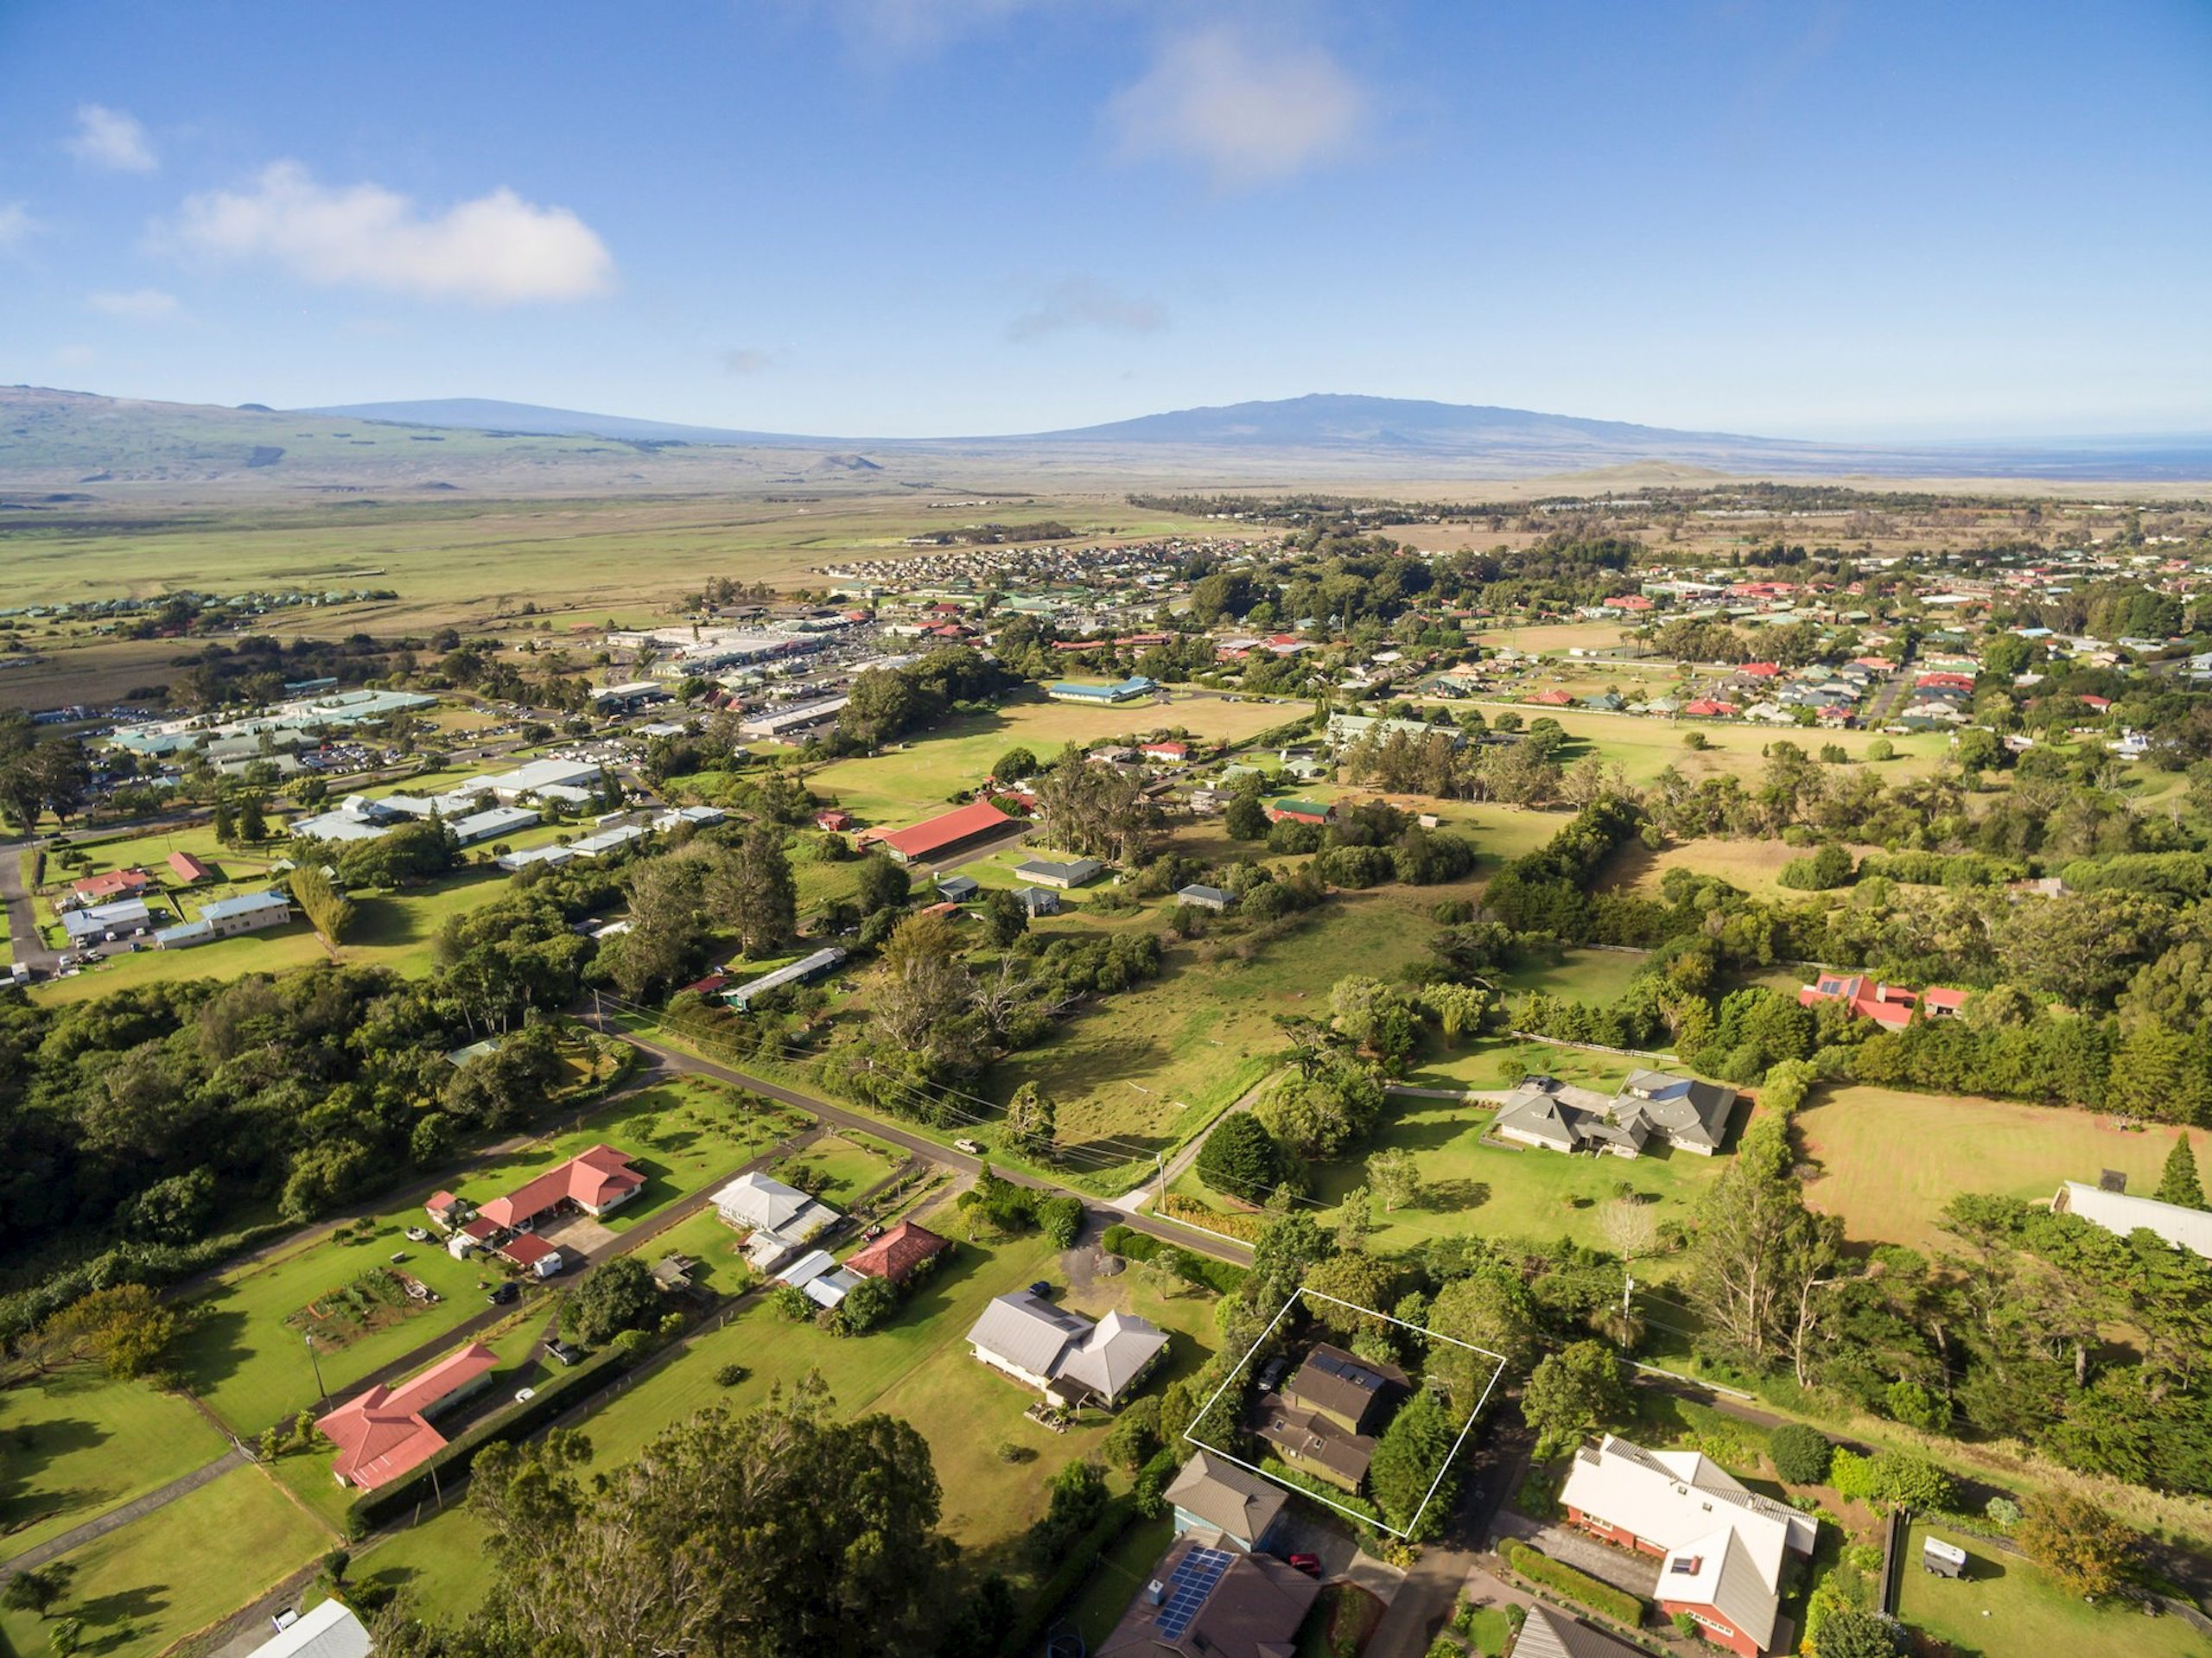 Located within 5-10 minutes of downtown Waimea, 2-Presidential Award-winning college preparatory K-12 schools, North Hawaii Community Hospital, 6 Farmers' Markets per week and all other services one could need.